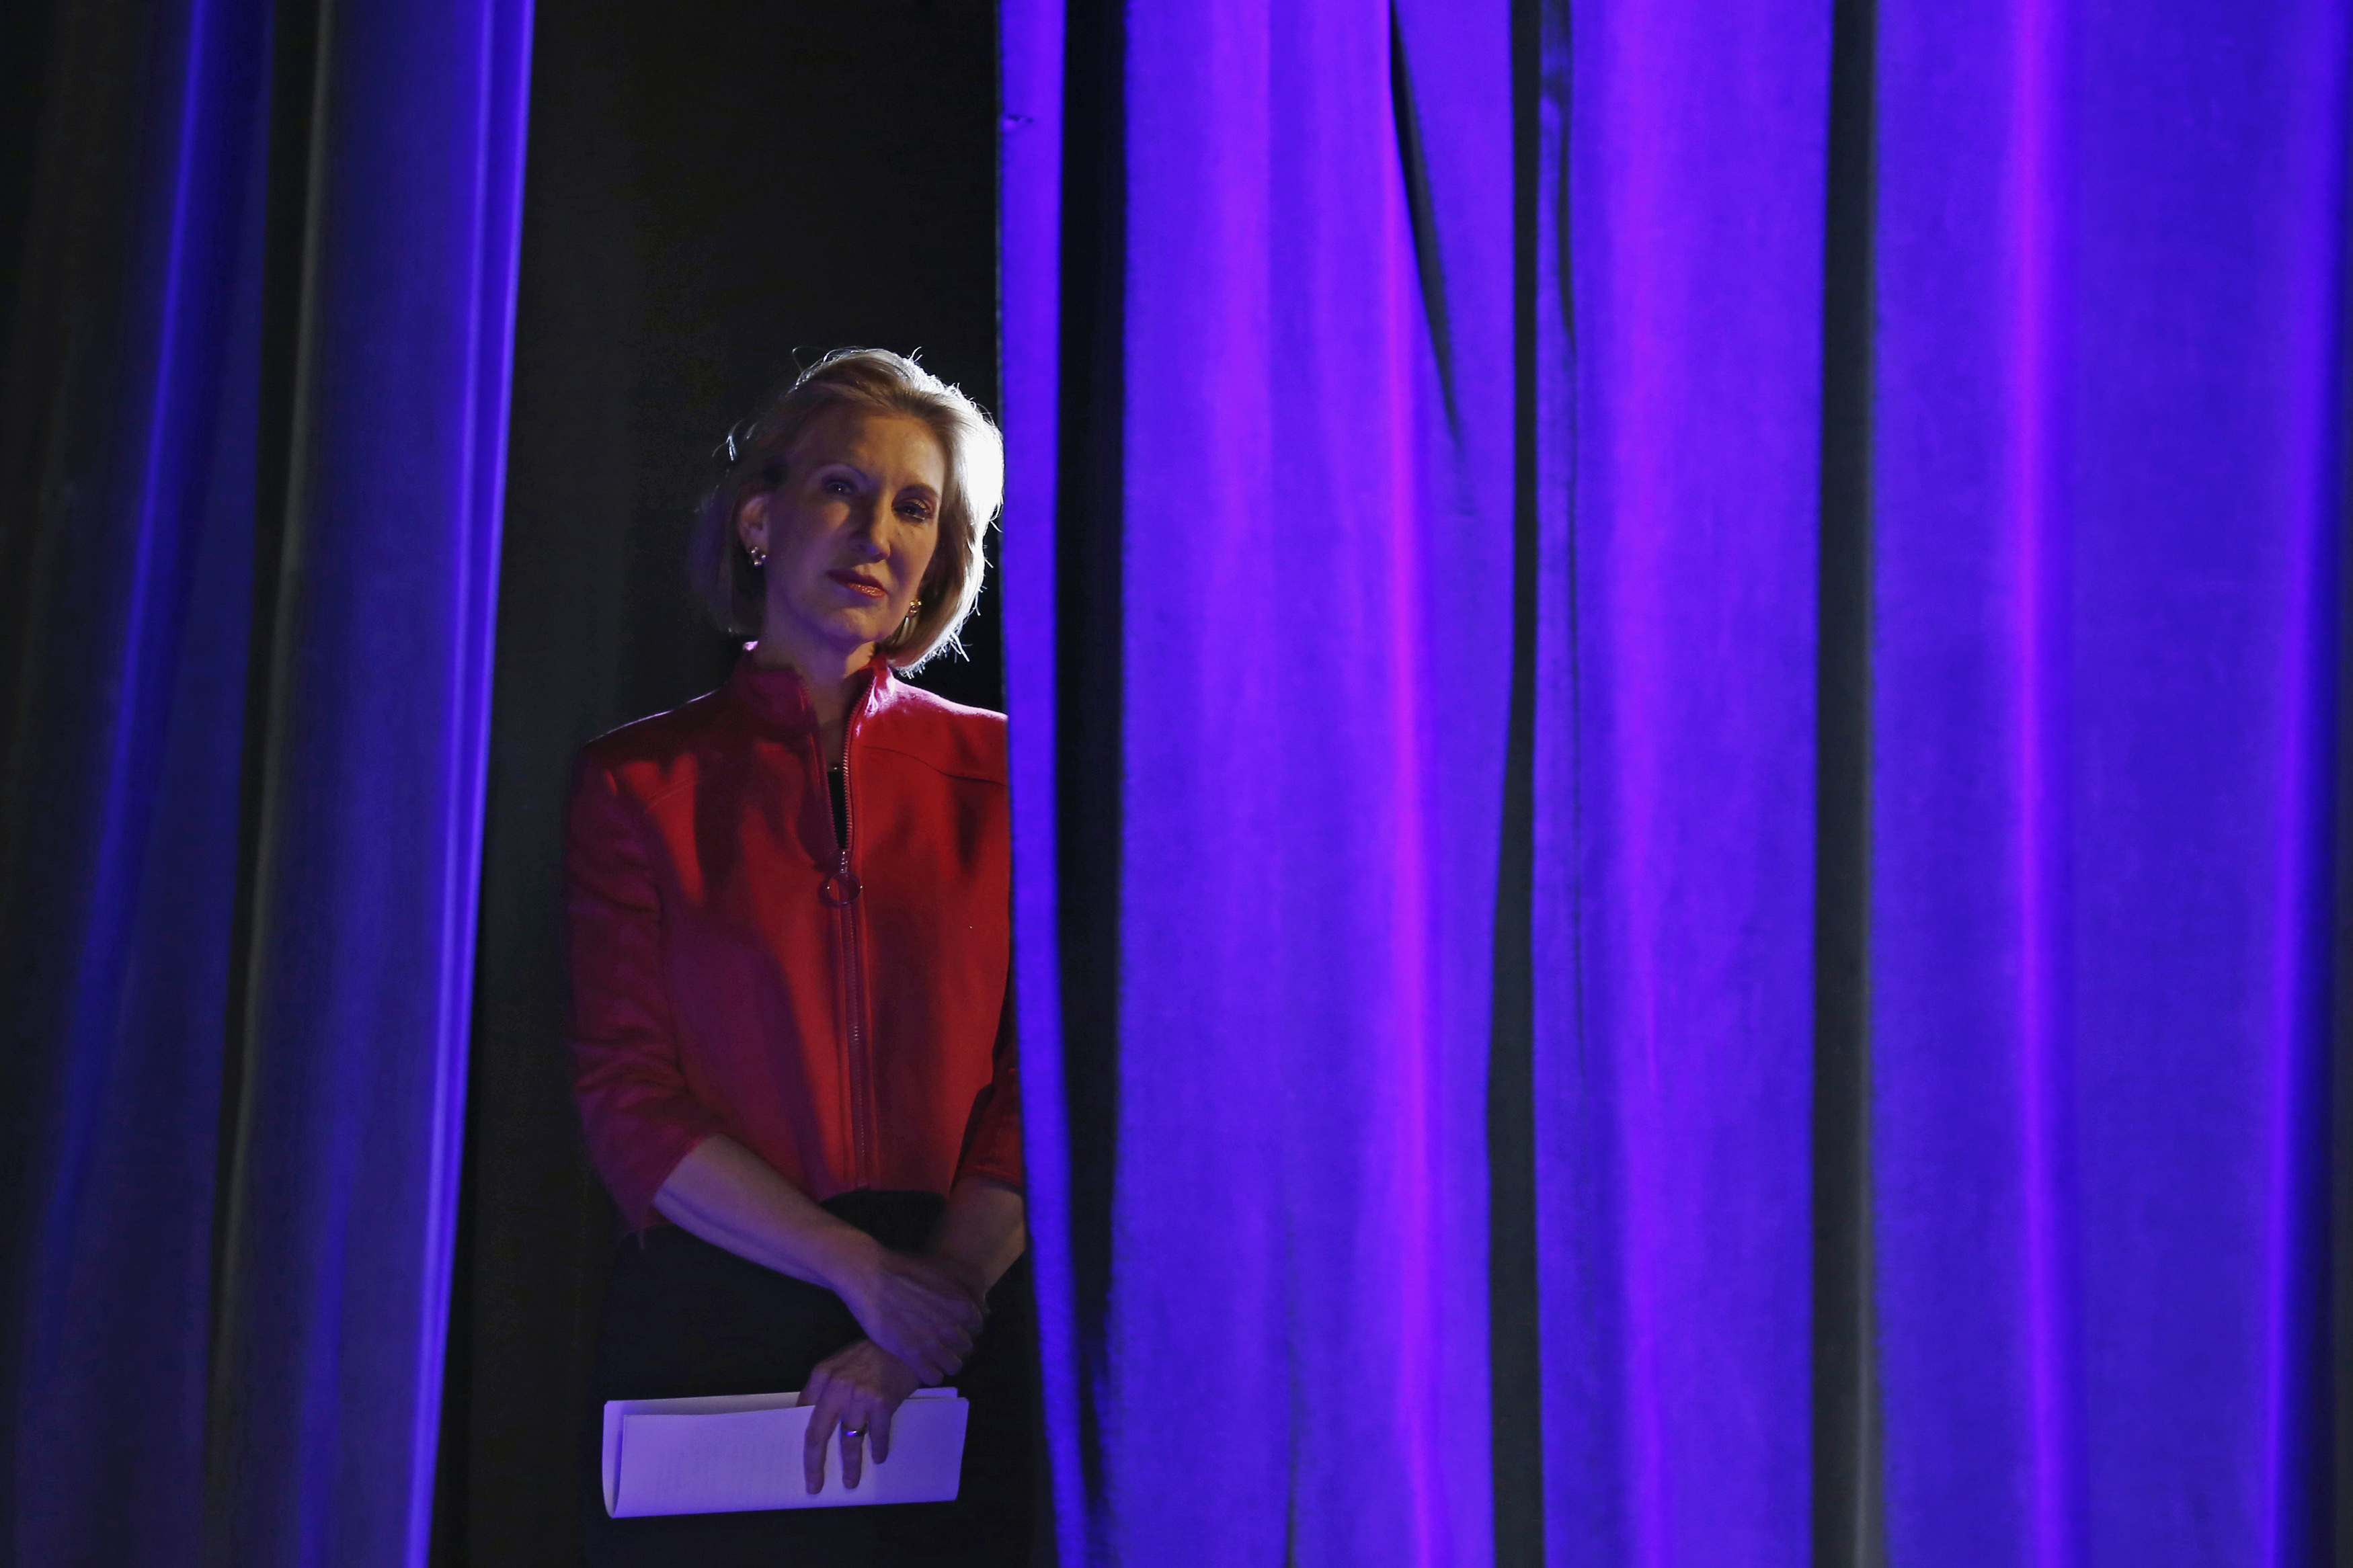 Former Hewlett-Packard Co Chief Executive Officer Carly Fiorina listens to her introduction from the side of the stage at the Freedom Summit in Des Moines, Iowa on Jan. 24, 2015.